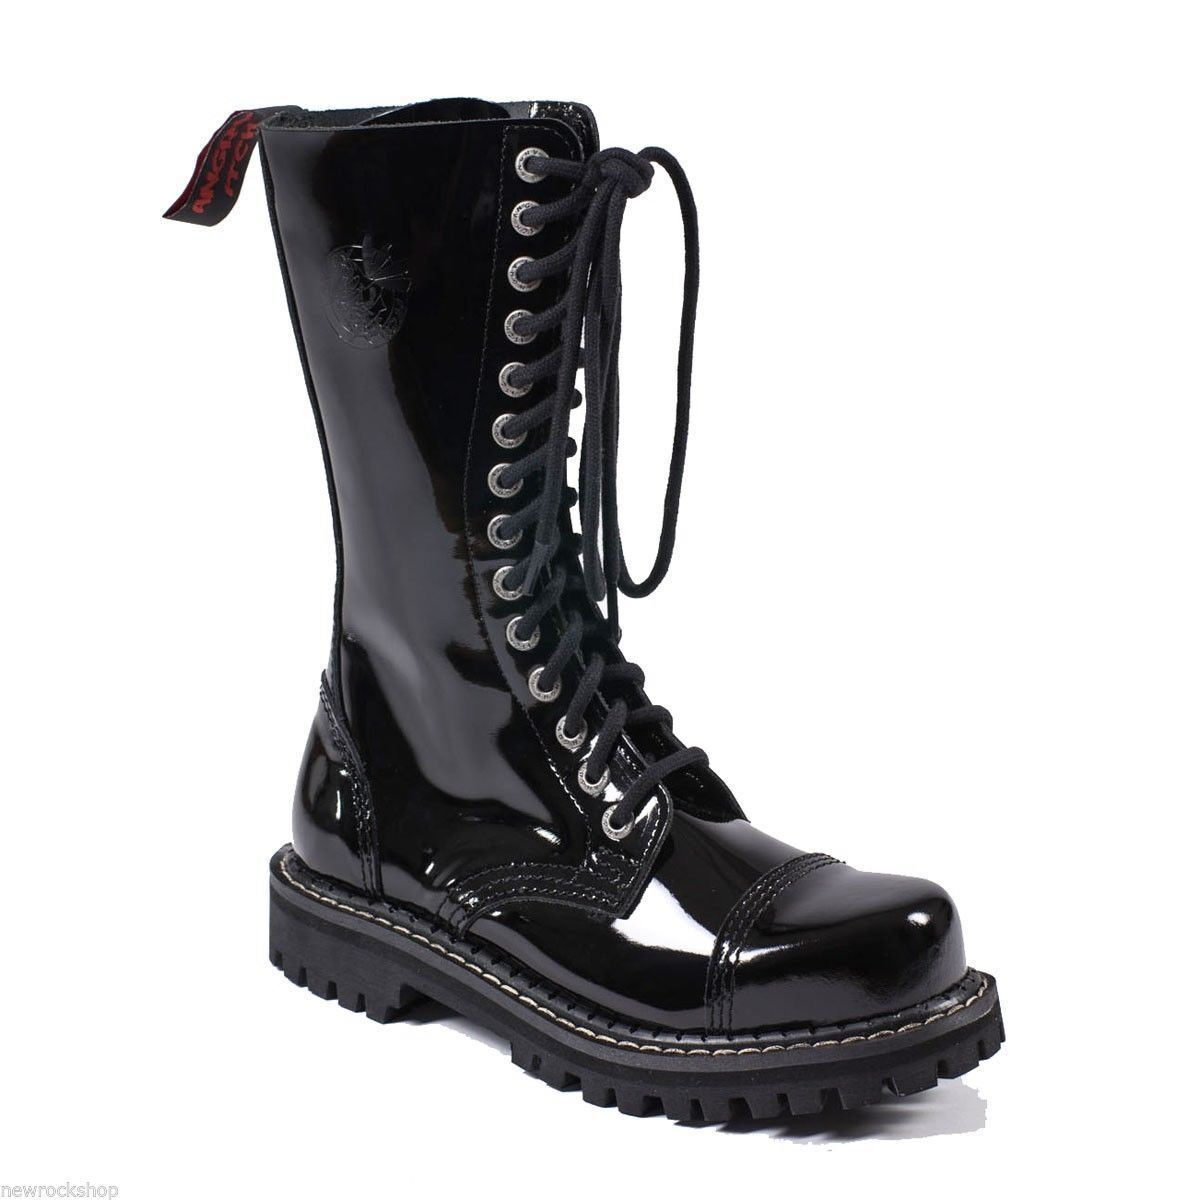 Angry Itch Patent 14 Hole Punk Negro Patent Itch Leather Army Ranger botas Steel Toe Zip f9f19f